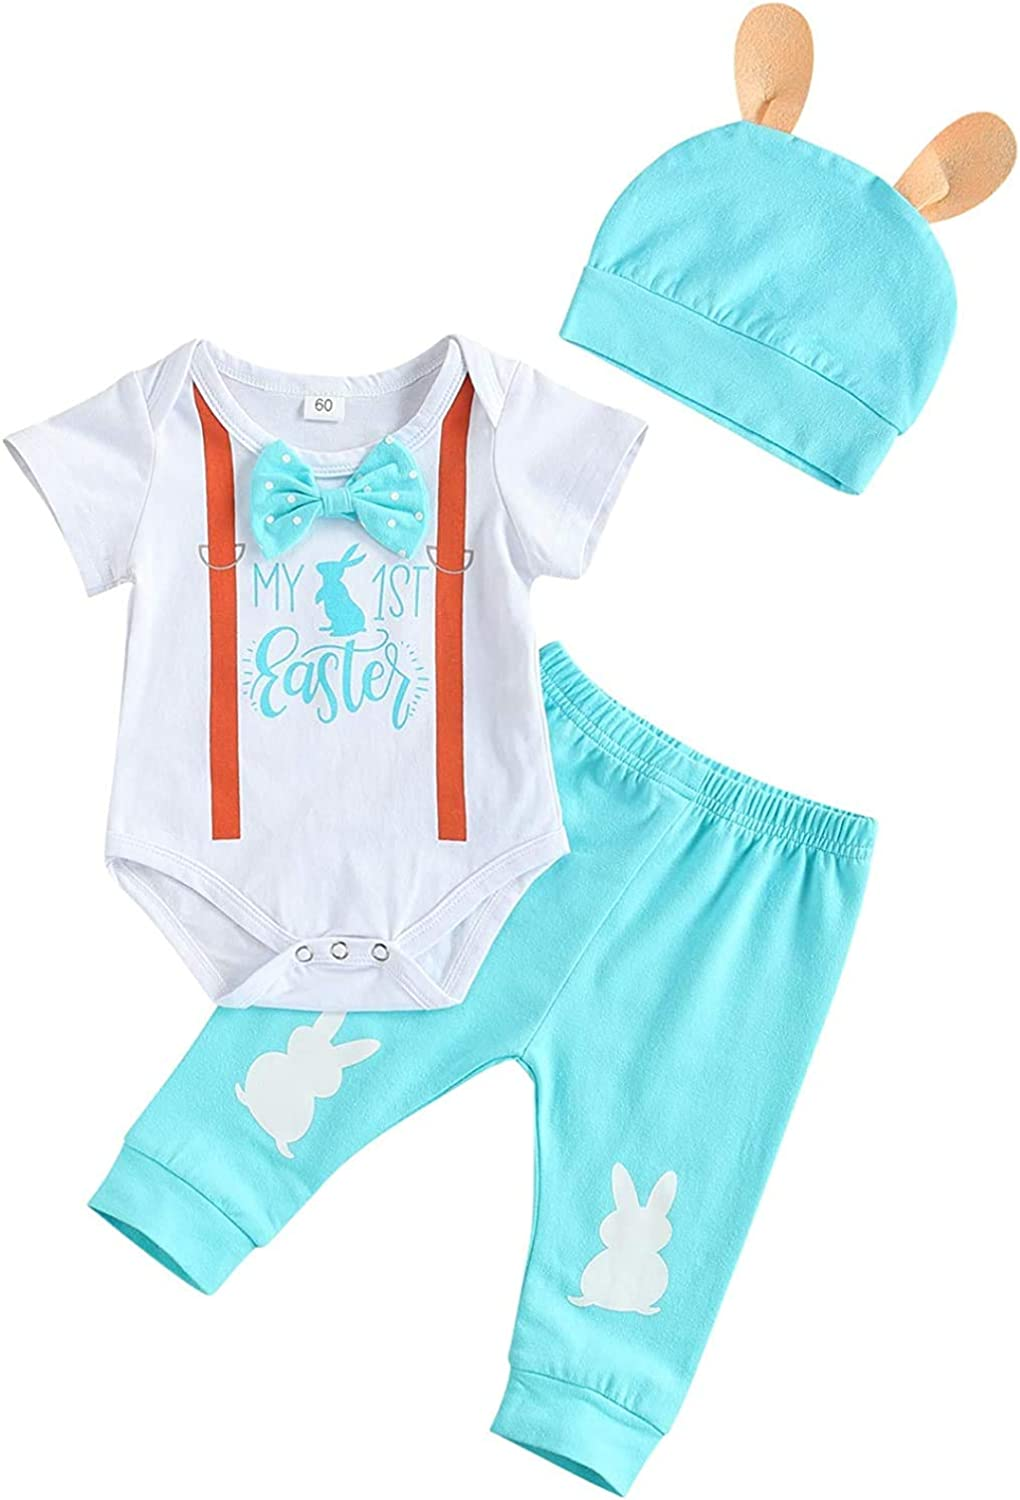 Newborn Baby Boy Easter Outfit Short Sleeve My First Easter Romper Bodysuit Tops Pants Hat 3PCS Bunny Clothes Set